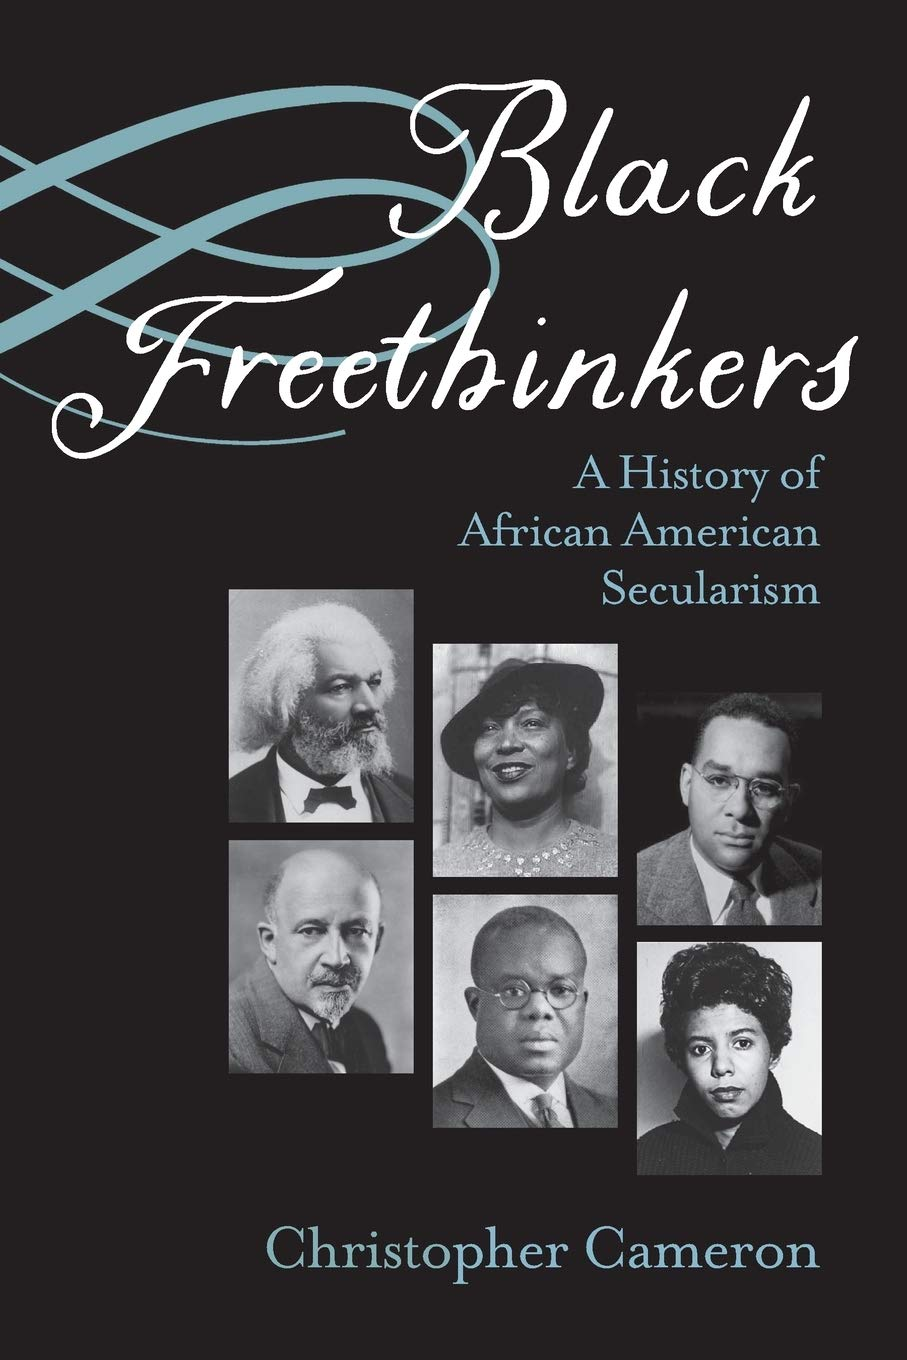 Black Freethinkers: A History of African American Secularism (Critical Insurgencies) by Northwestern University Press